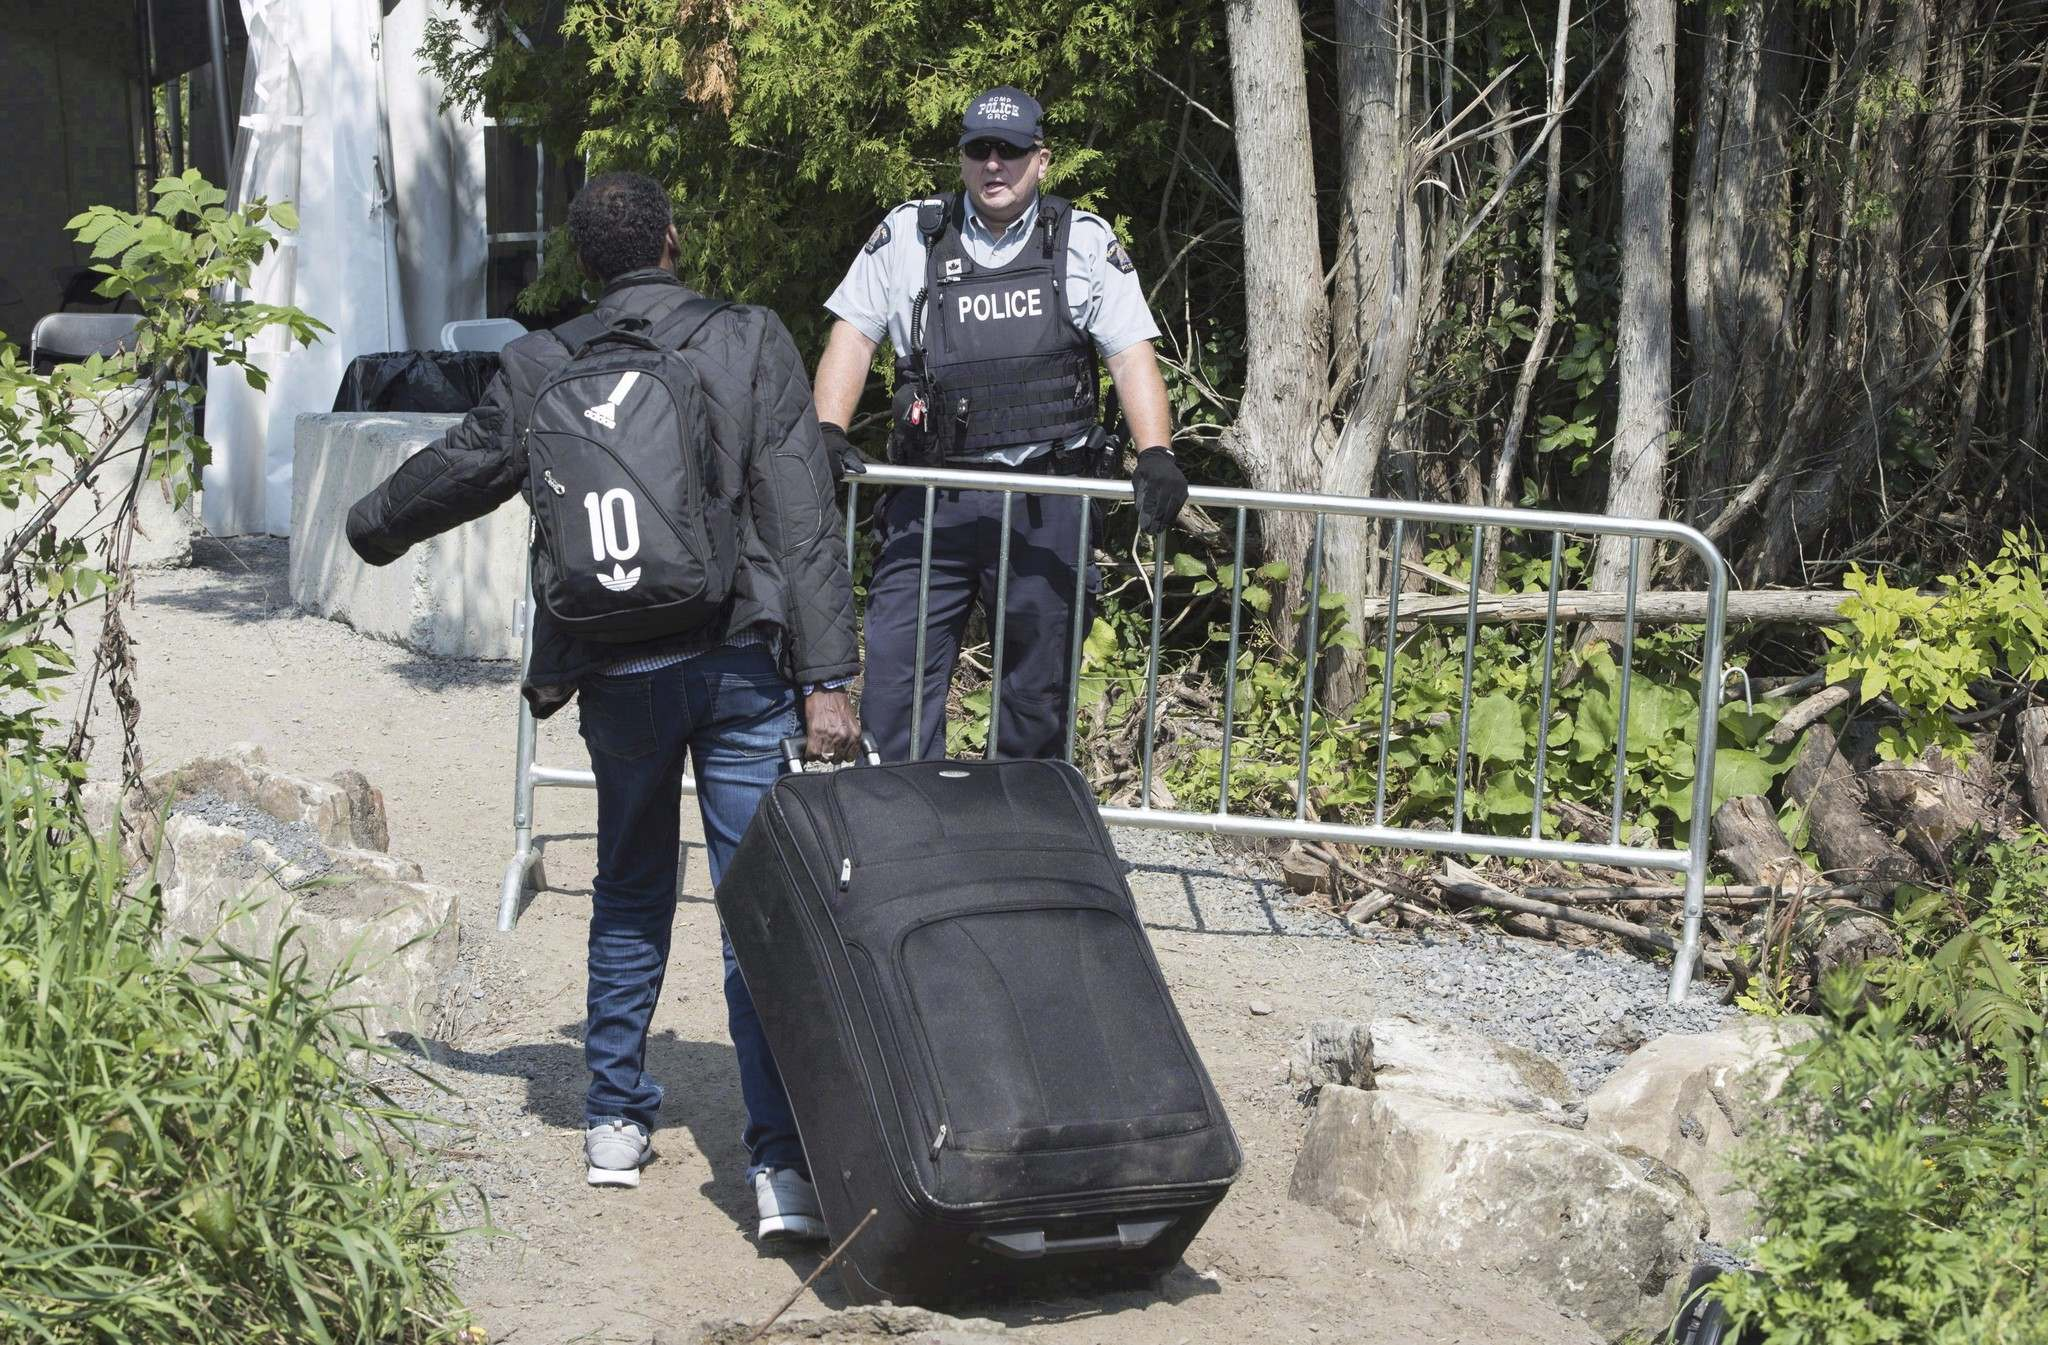 """THE CANADIAN PRESS/Paul Chiasson</p><p>An asylum seeker, claiming to be from Eritrea, is confronted by an RCMP officer as he crosses the border into Canada. A new poll has found 76 per cent of Manitoba respondents agreed with the statement: """"This situation is a crisis – Canada's ability to handle the situation is at a limit.""""</p>"""